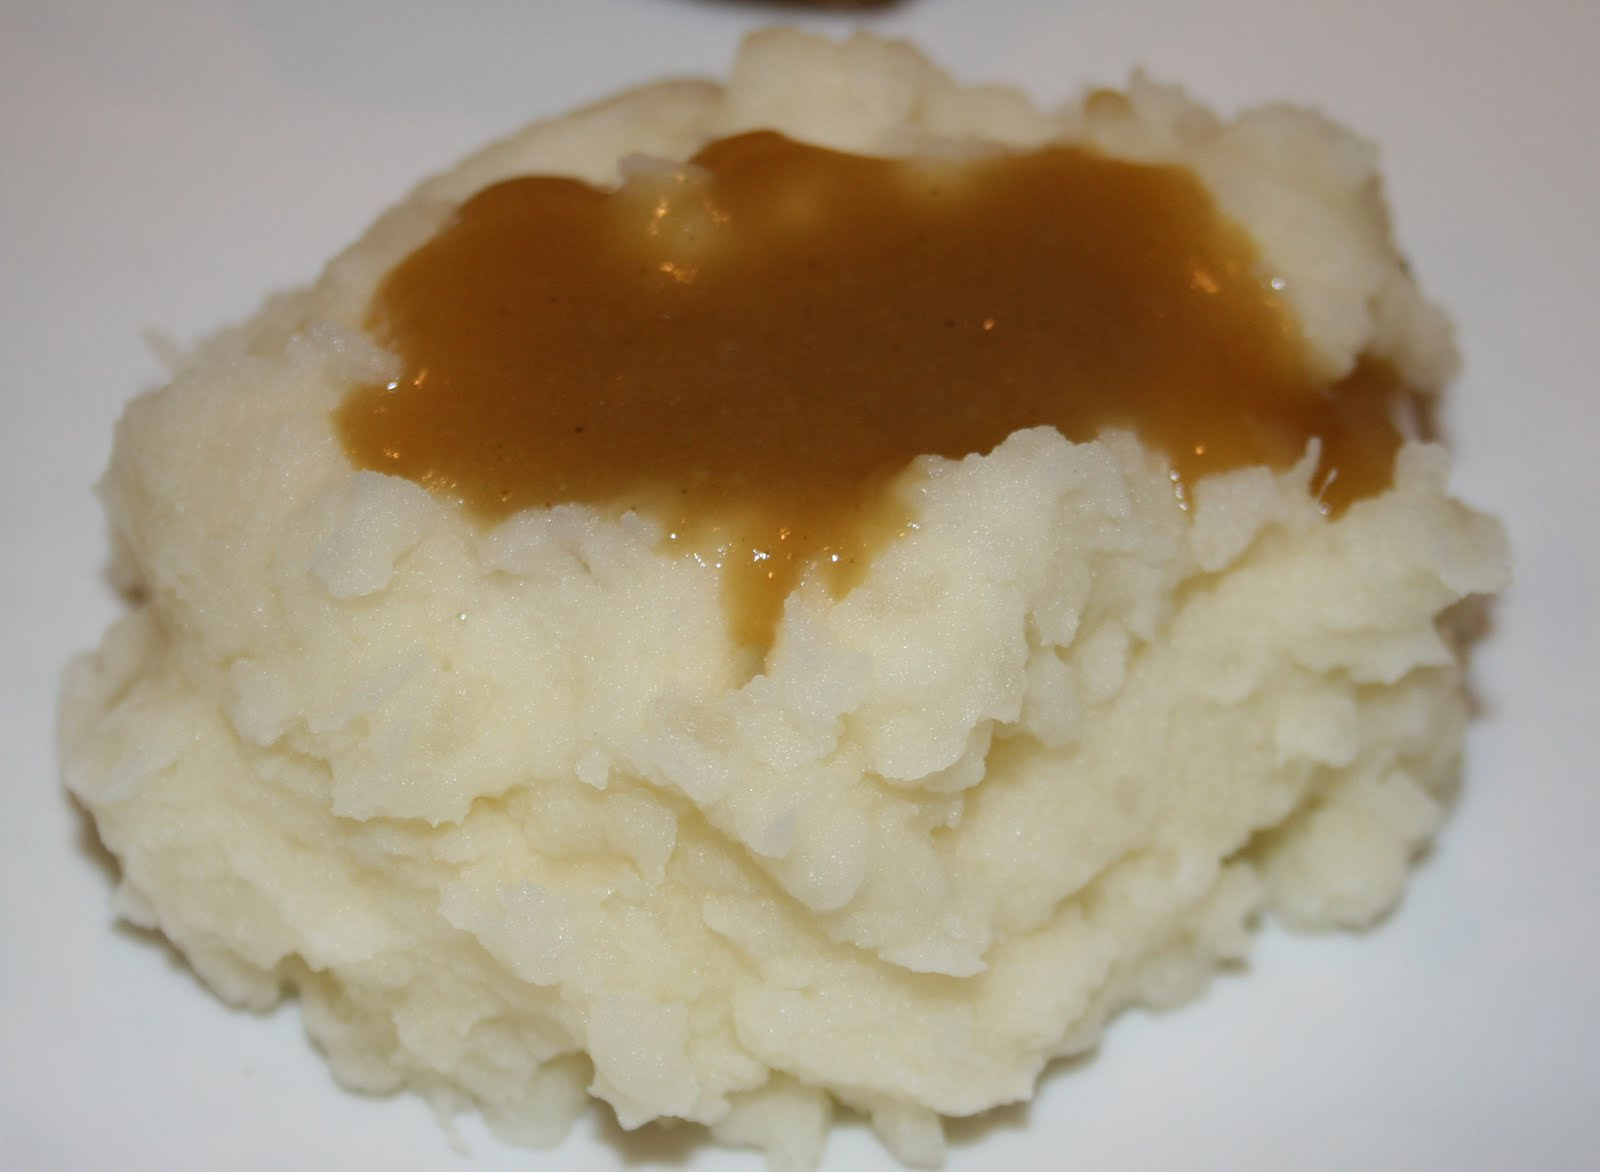 Mashed Potatoes with Gravy